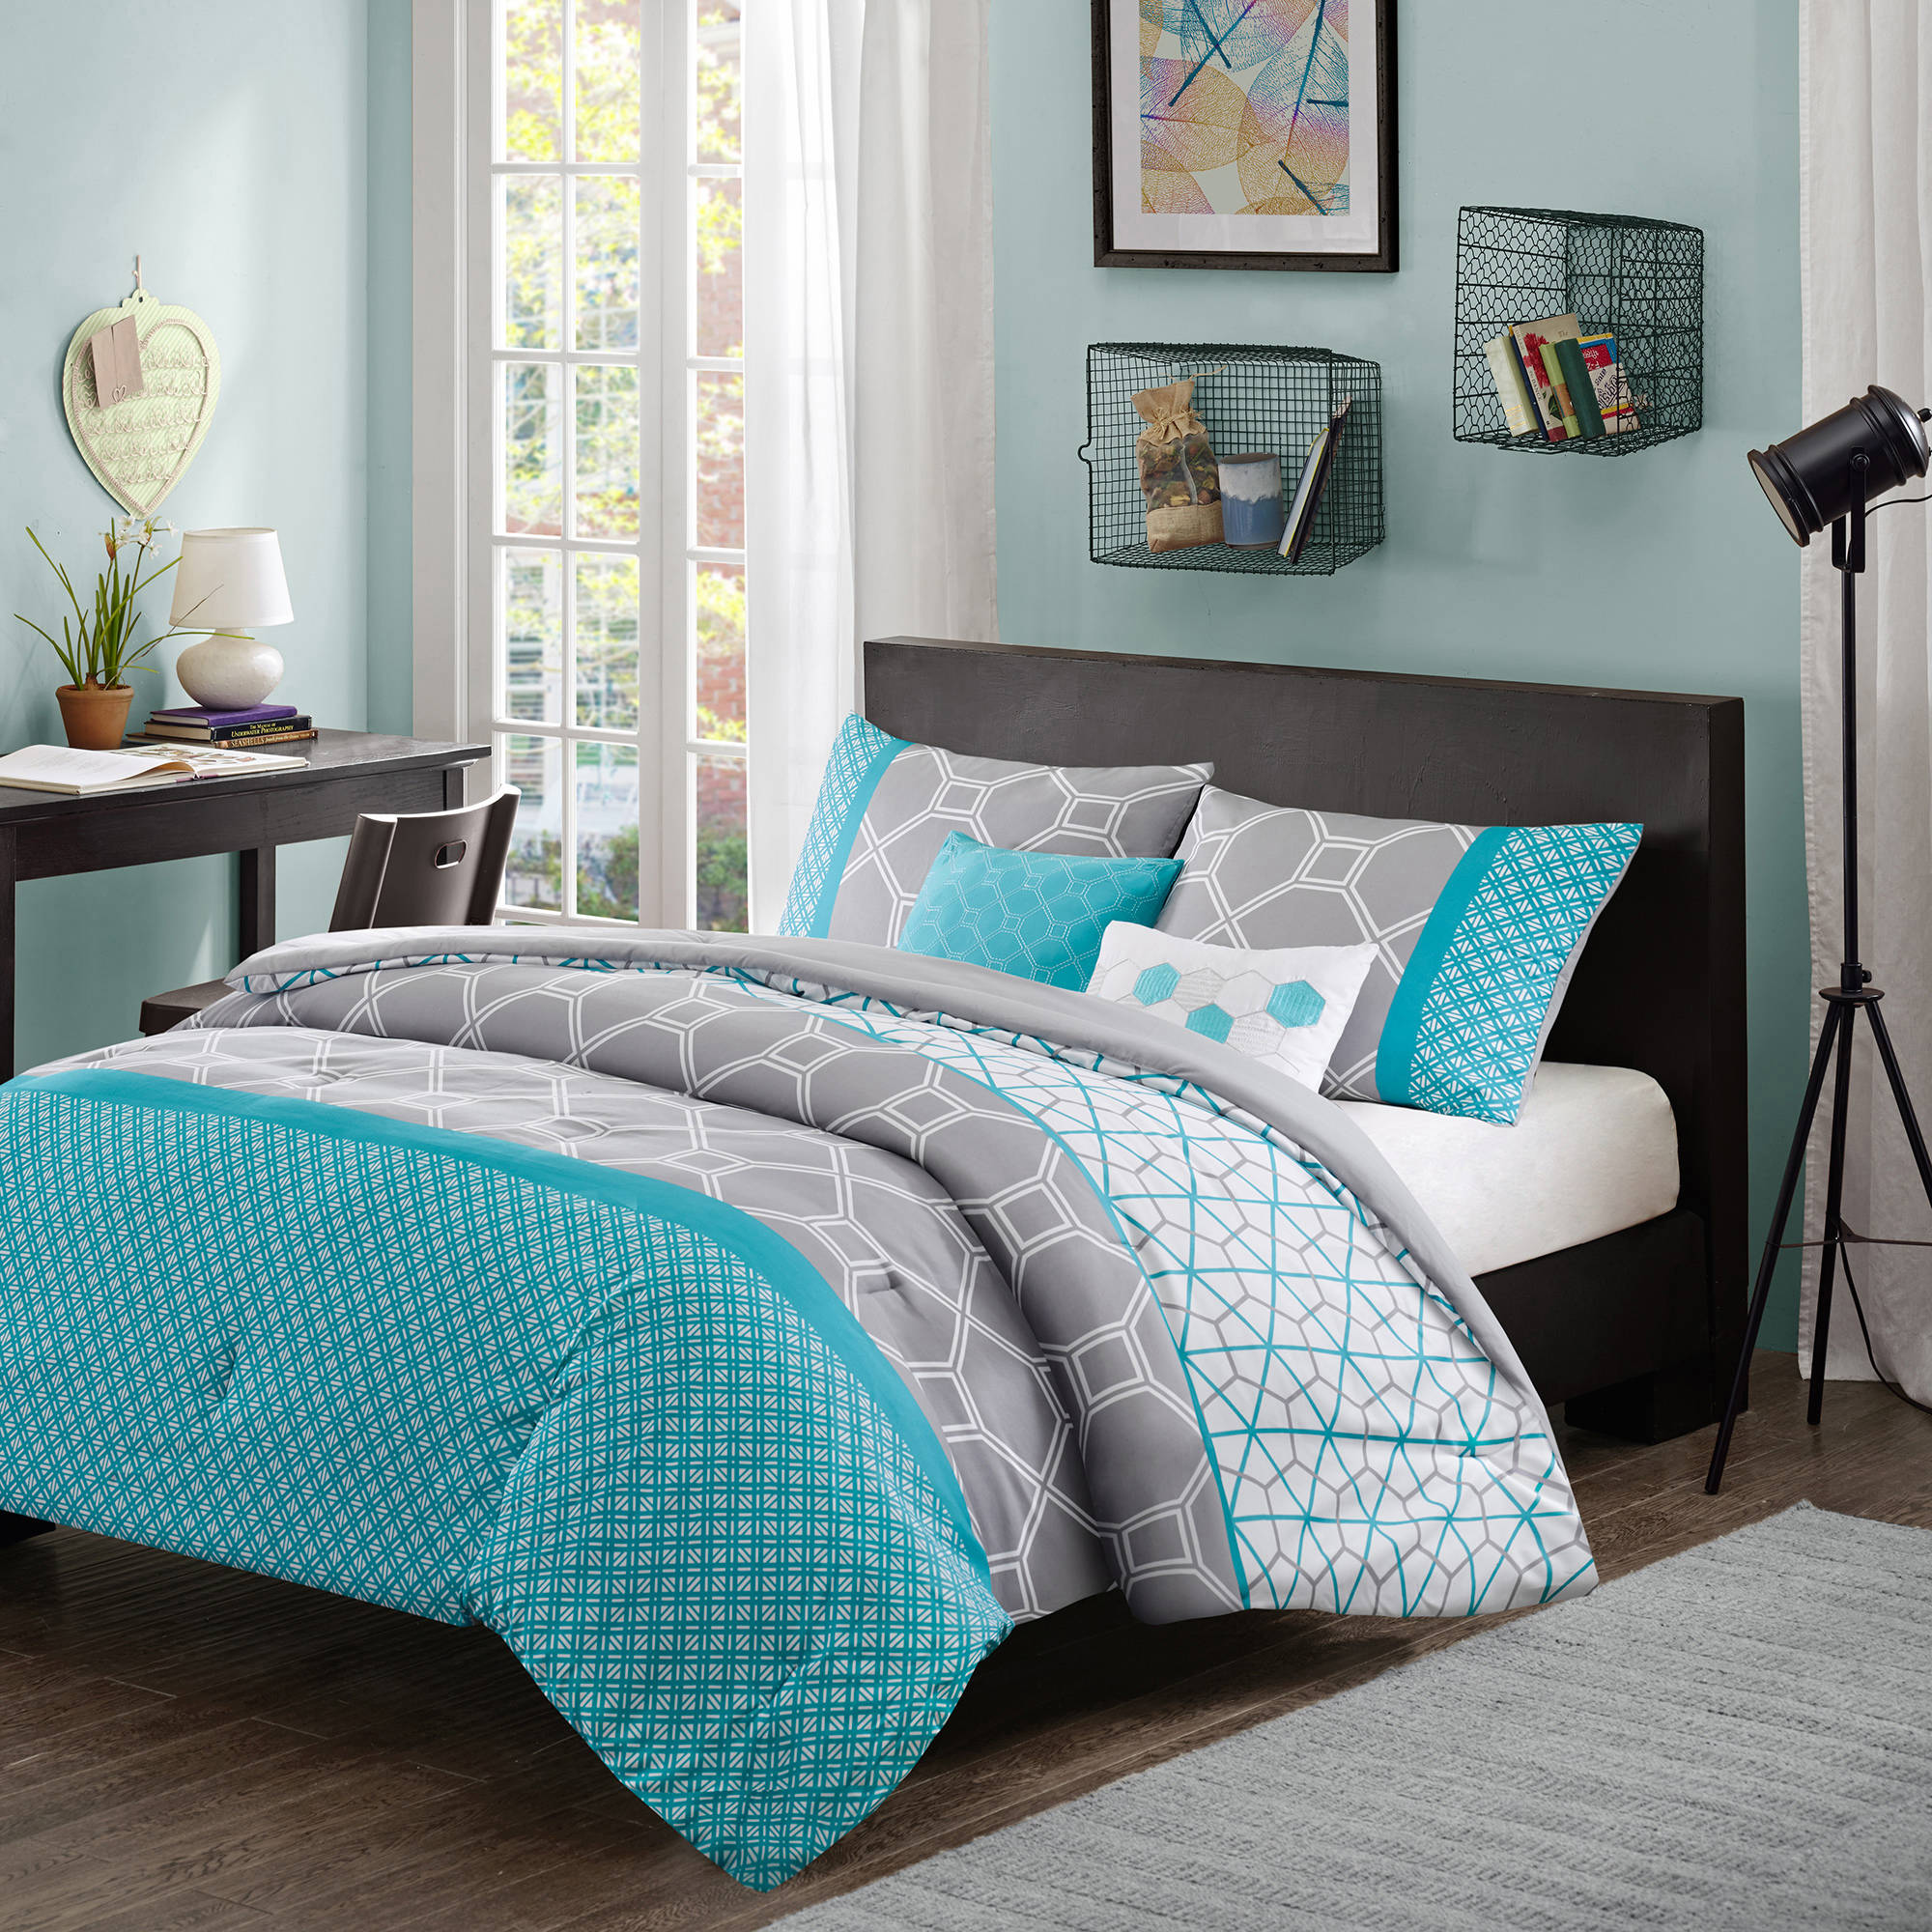 Details about home essence apartment sarah bedding comforter set